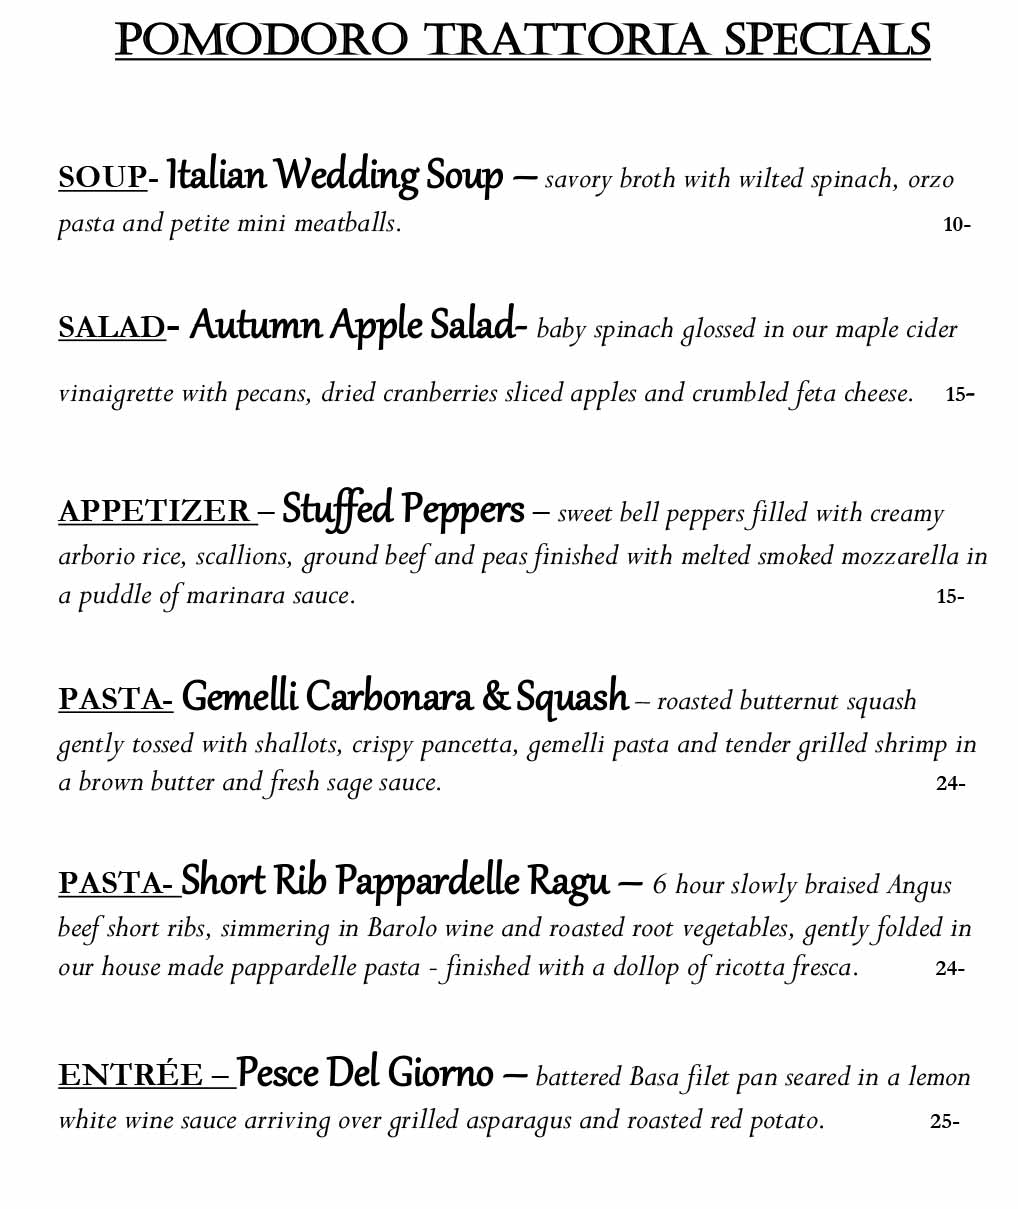 Pomodoro Riverside Weekly Specials from 11/08 - 11/14